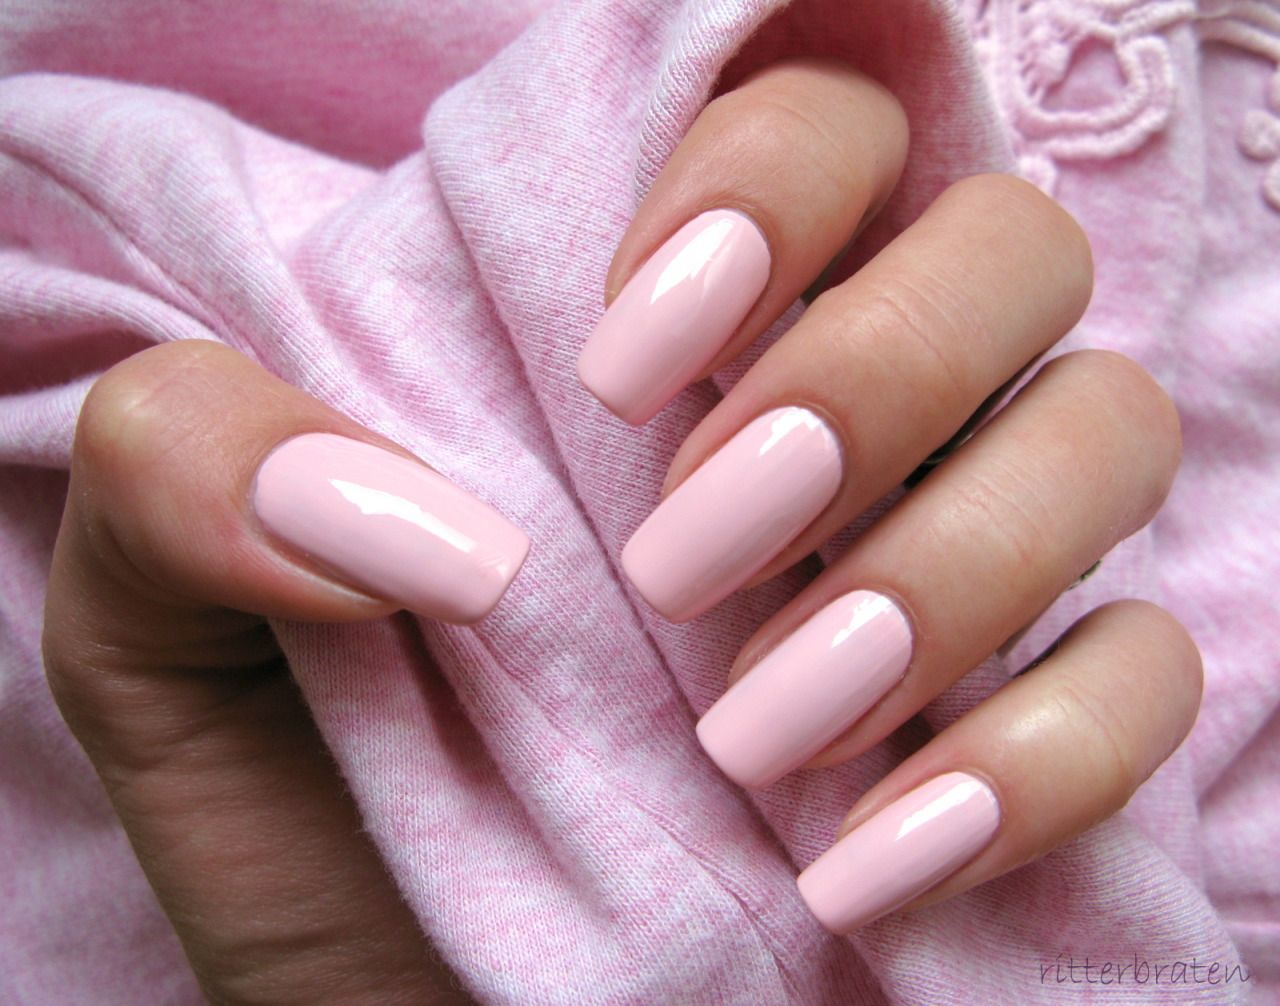 Powder pink nails pictures photos and images for facebook tumblr - Blonde Barbie Bimbo Photo